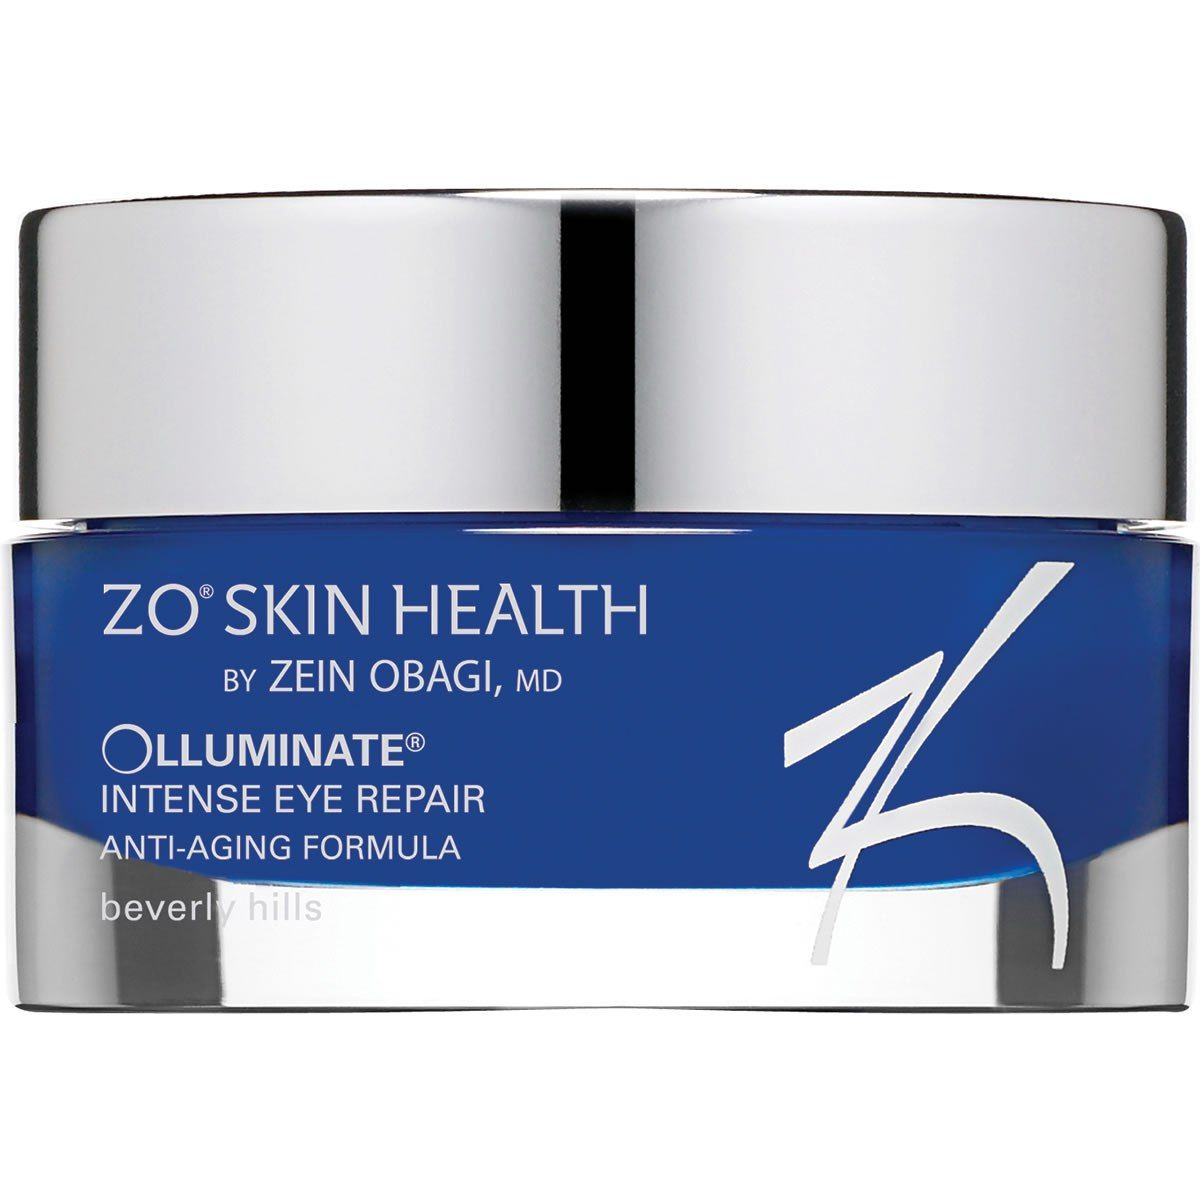 Pin on ZO Skin Health